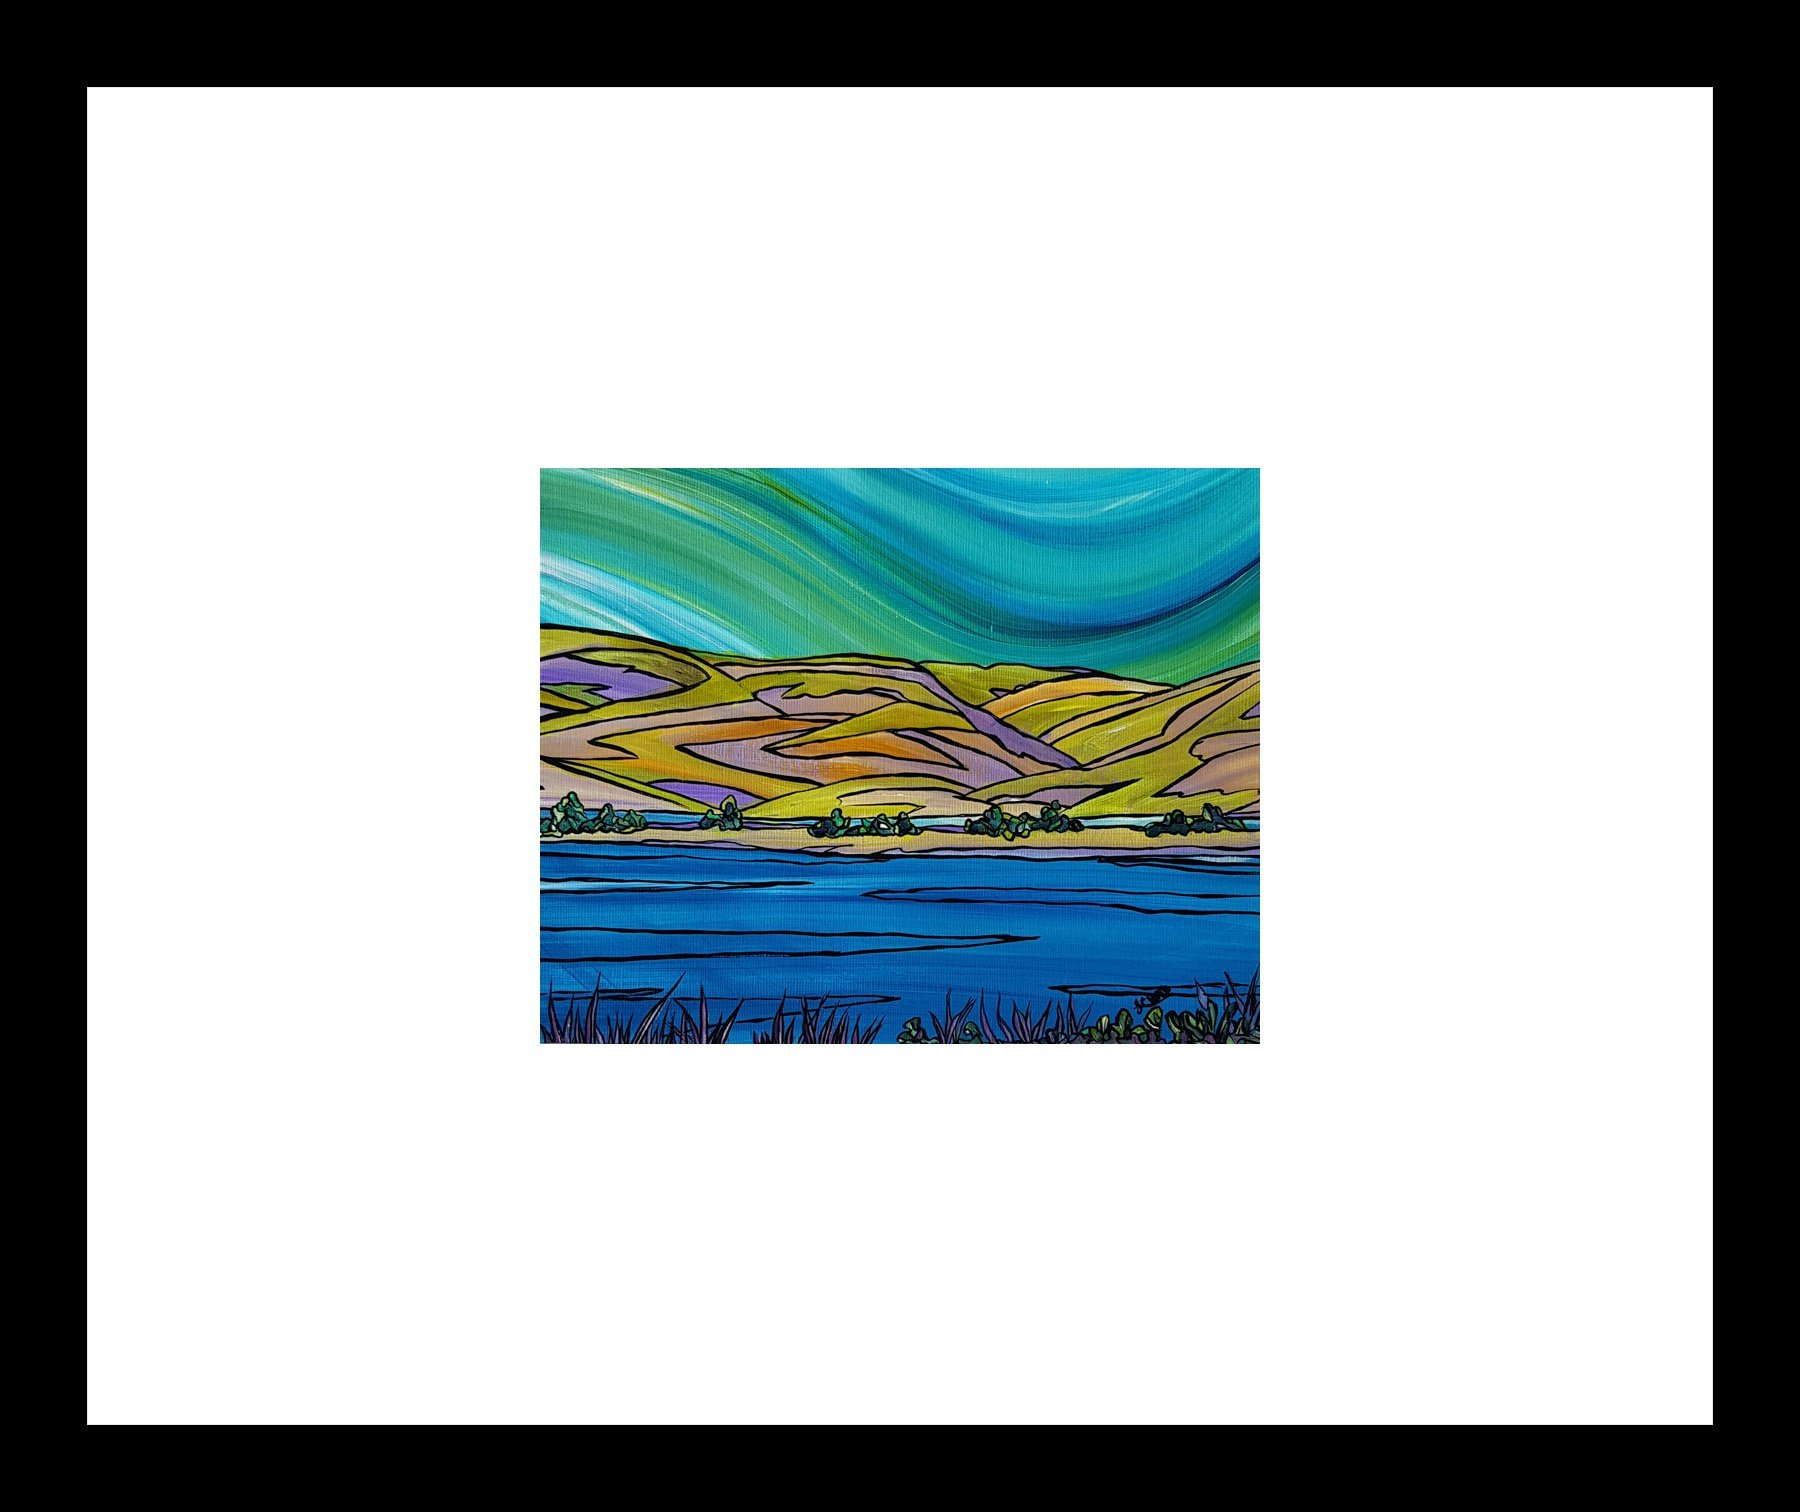 """Along the Qu'Appelle"" [2018] Image: 9.5"" x 7.5"" Framed: 20"" x 20"" Acrylic on 246 lb. paper $250.00"